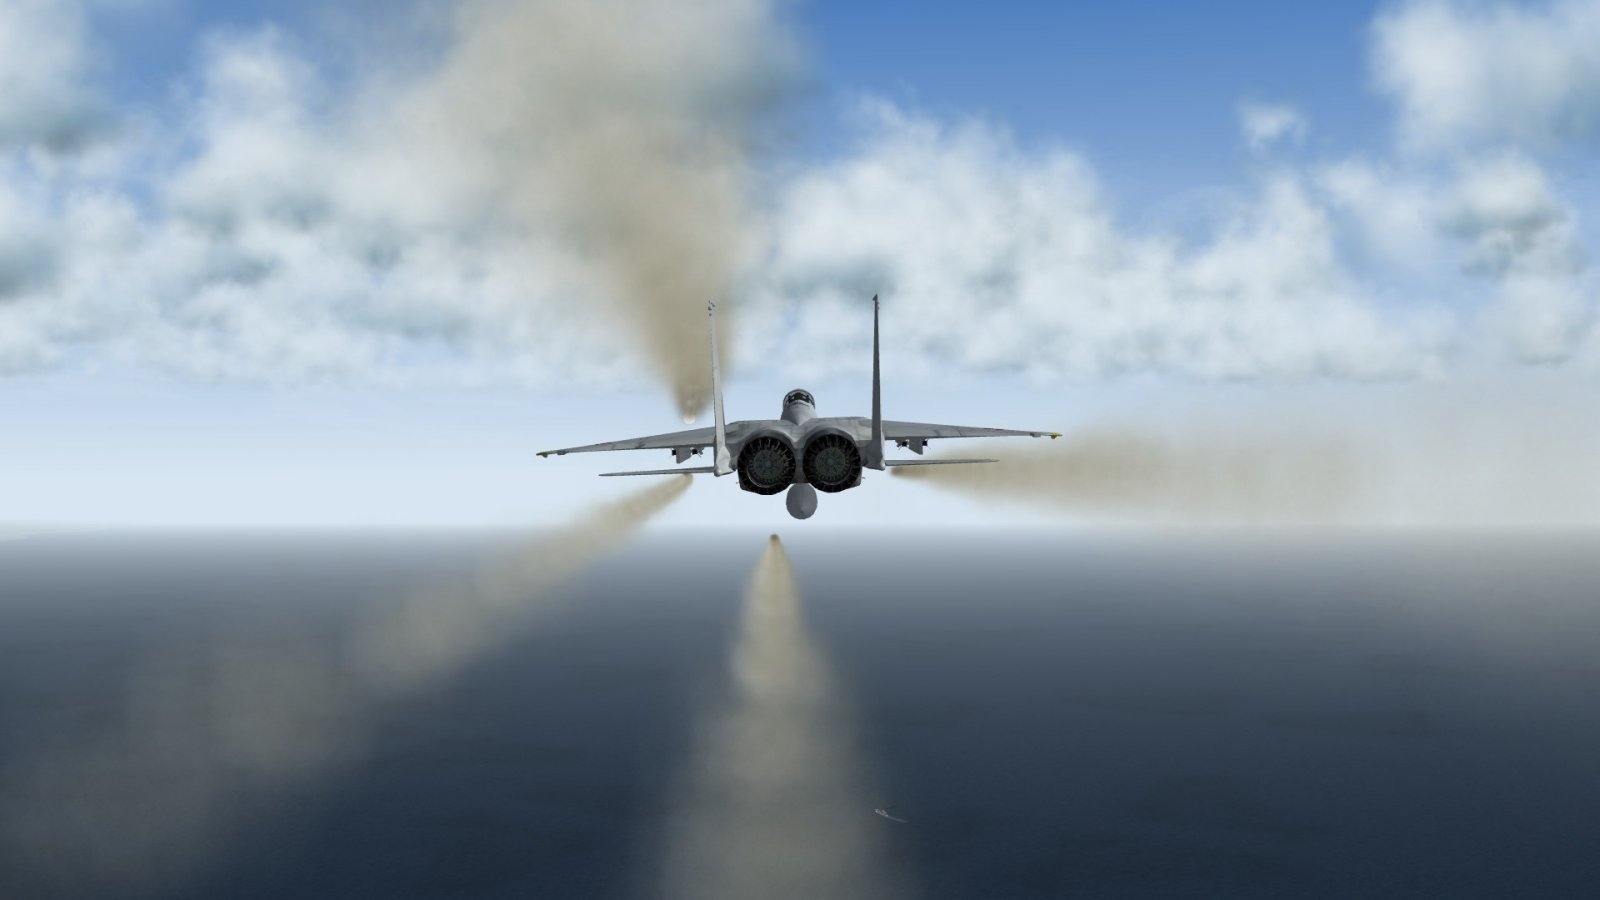 What's Left Behind After Four AAM-4Bs Fired From F-15J